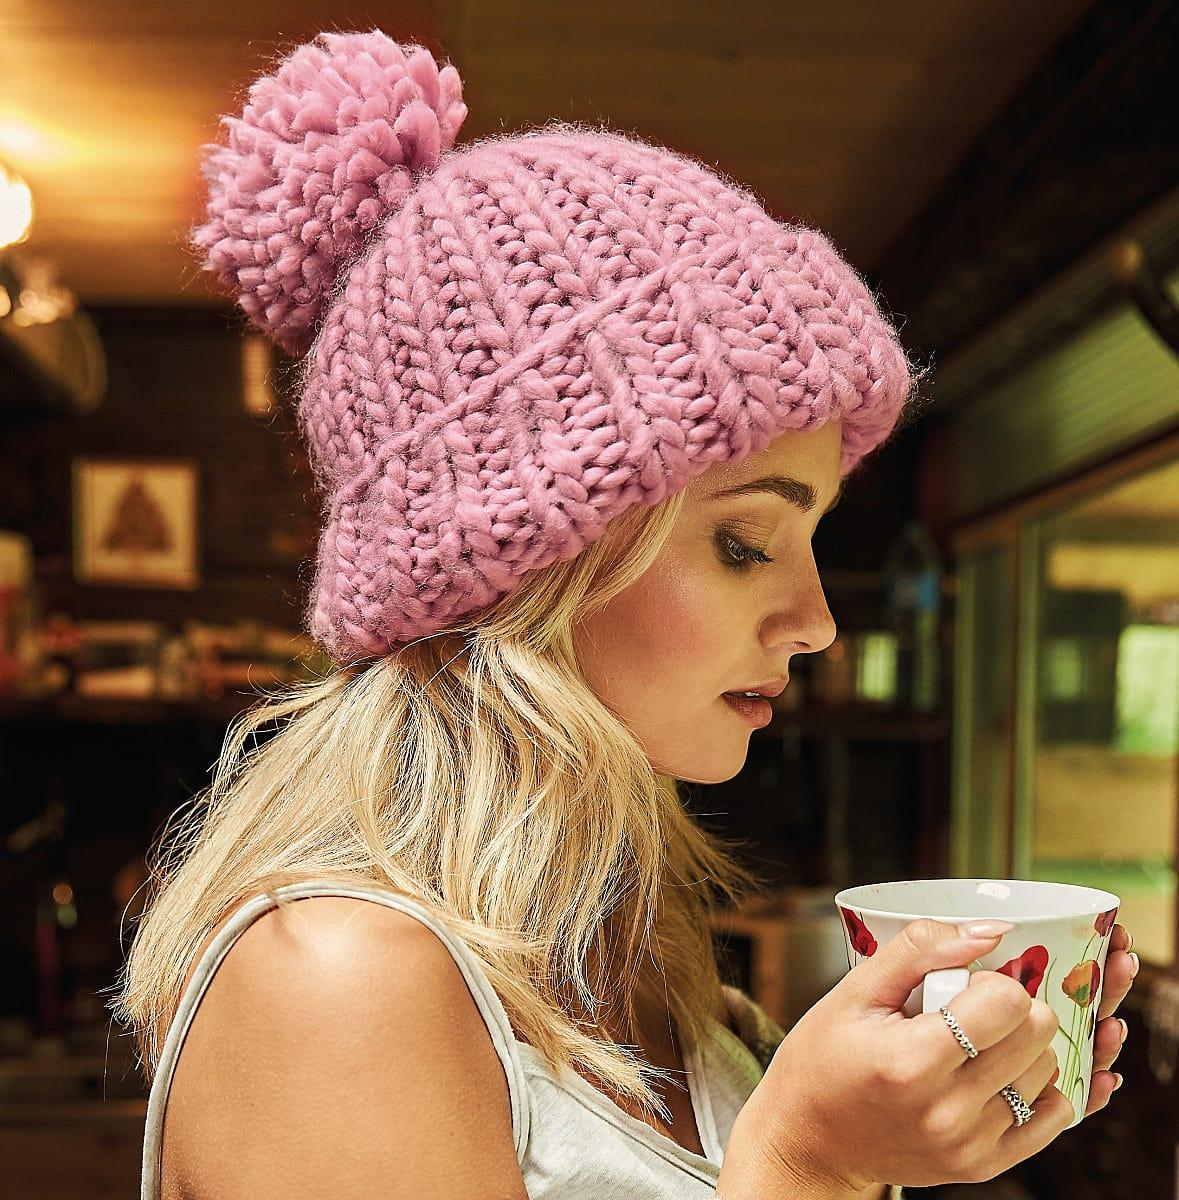 Beechfield Oversized Knitted Beanie Hat in Dusky Pink (Product Code: B483)